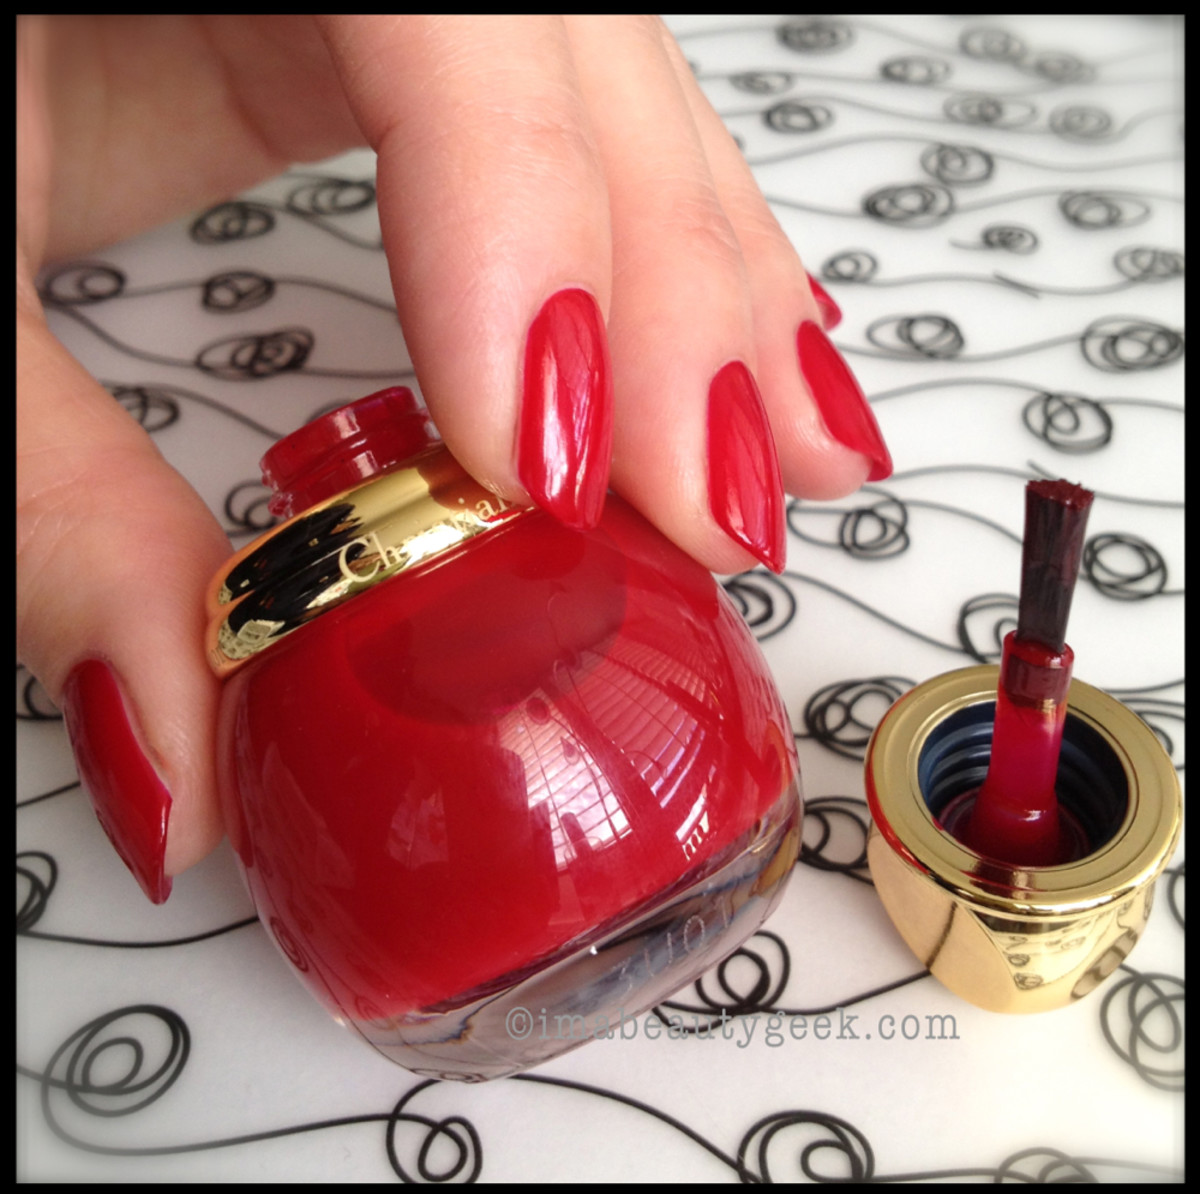 Dior Holiday 2013 Dior Diorific Vernis in Marilyn 2